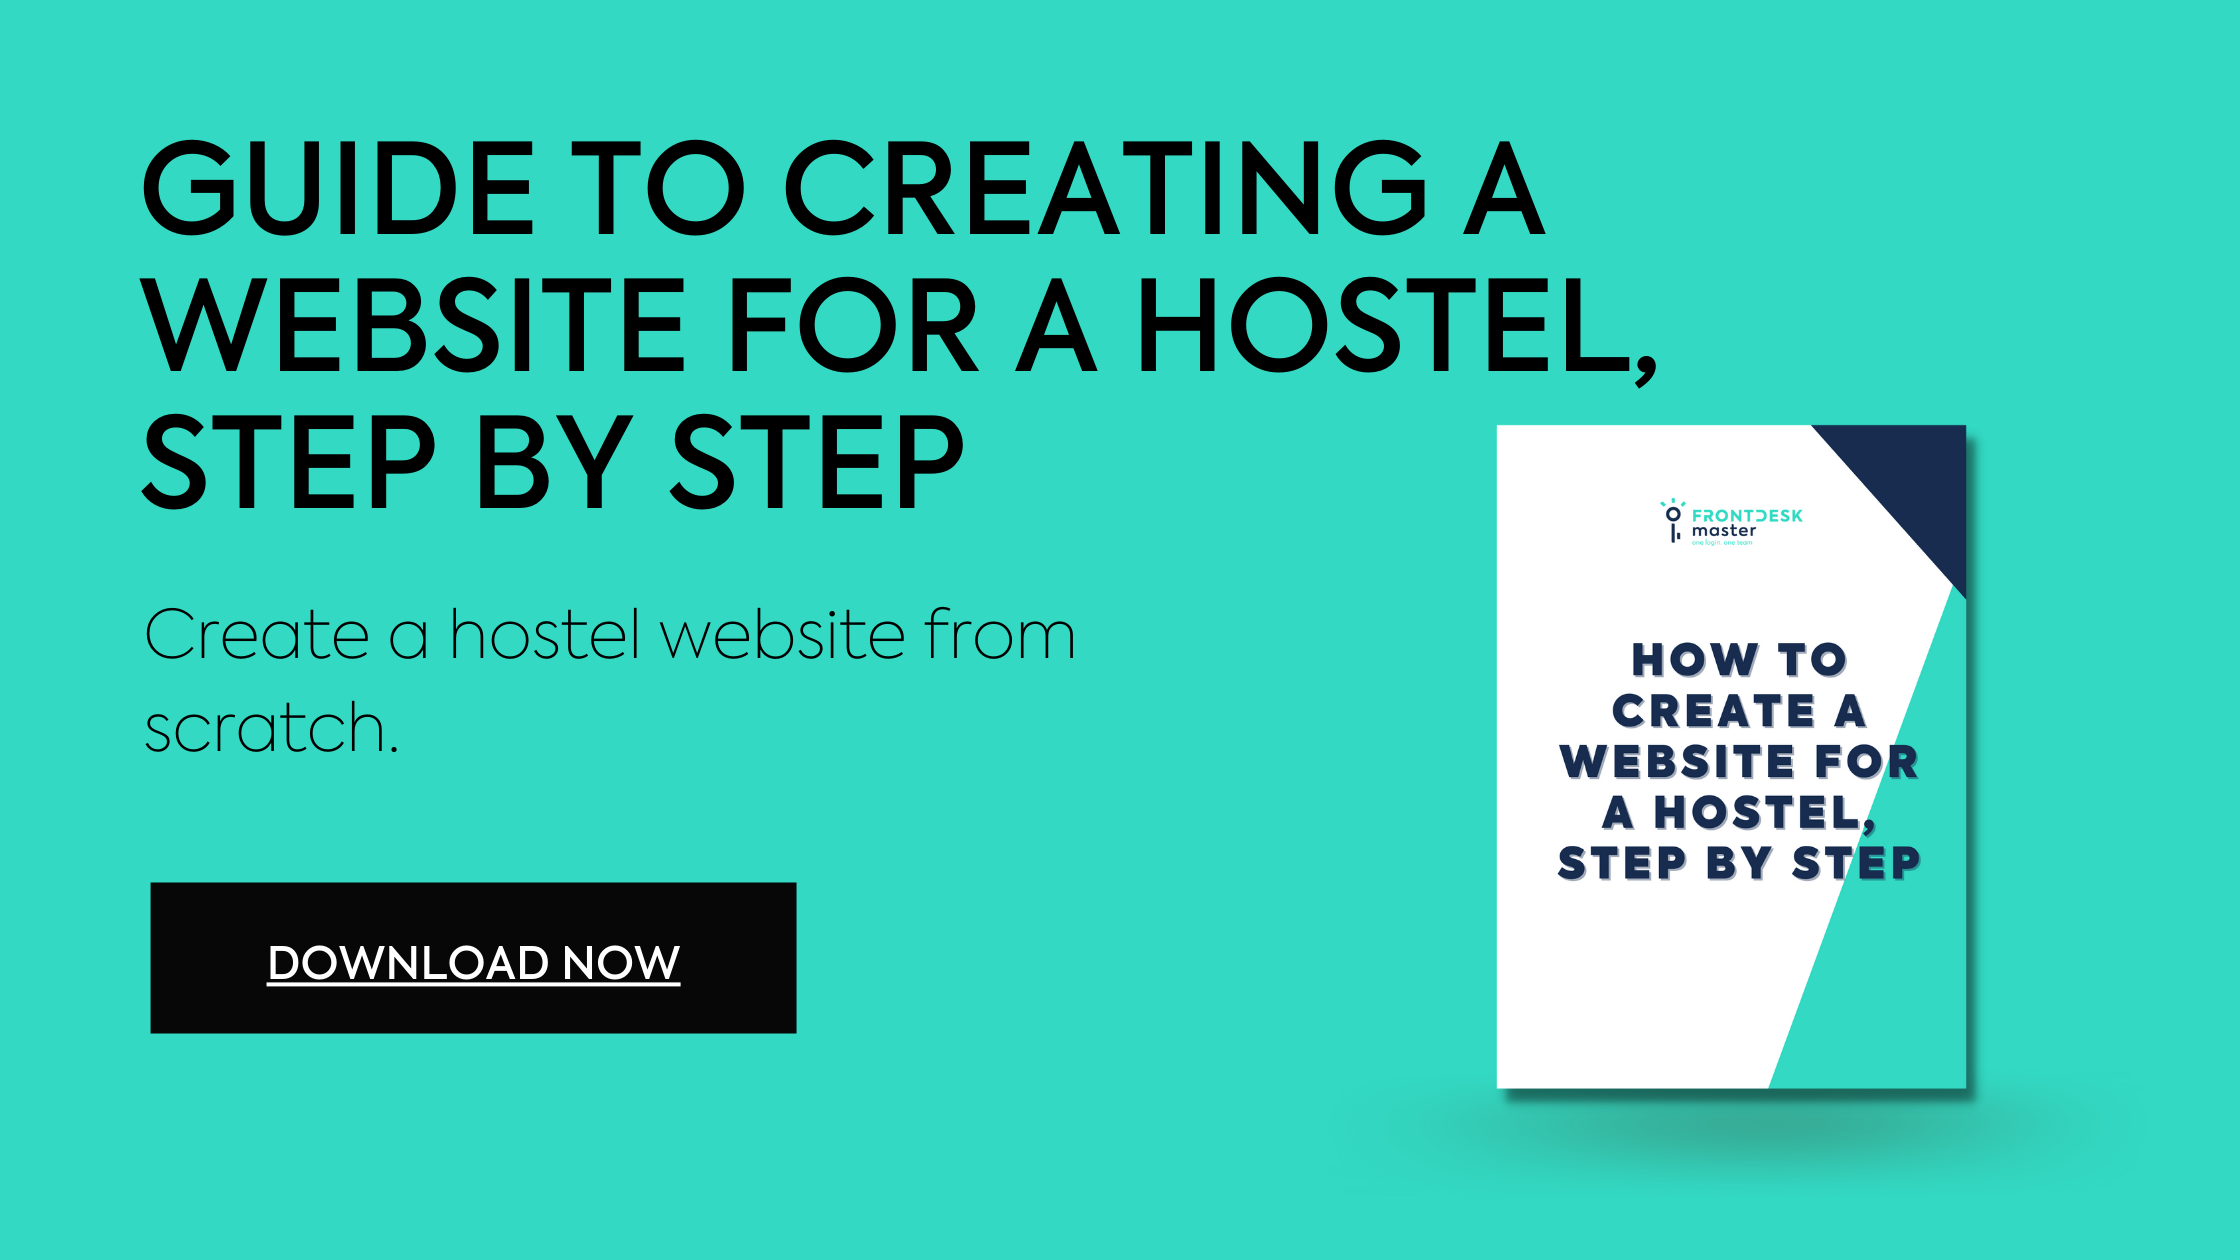 download a guide to creating hostel website